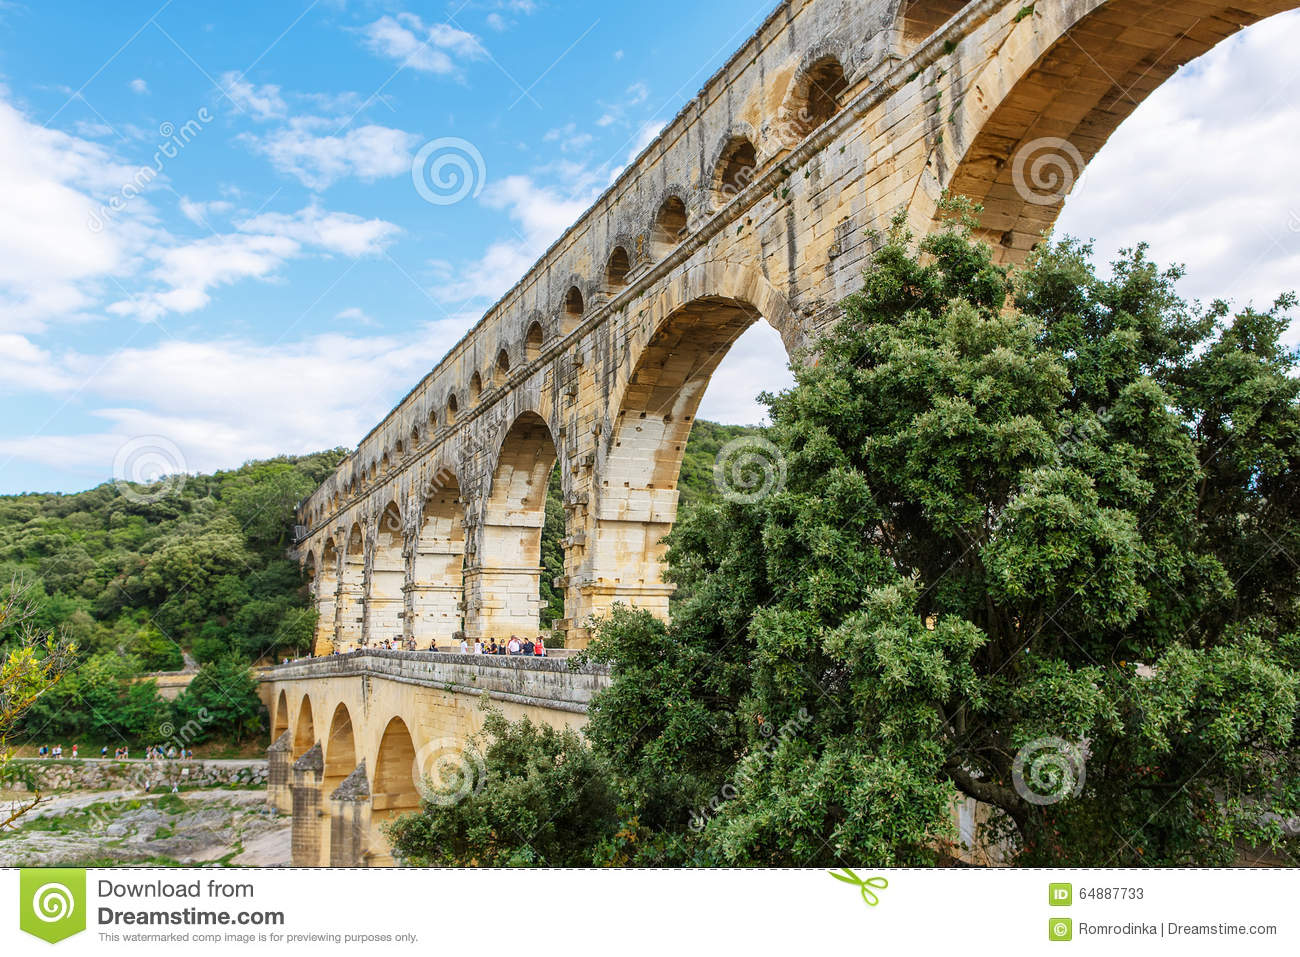 How Old Is The Aqueduct At Nimes 60